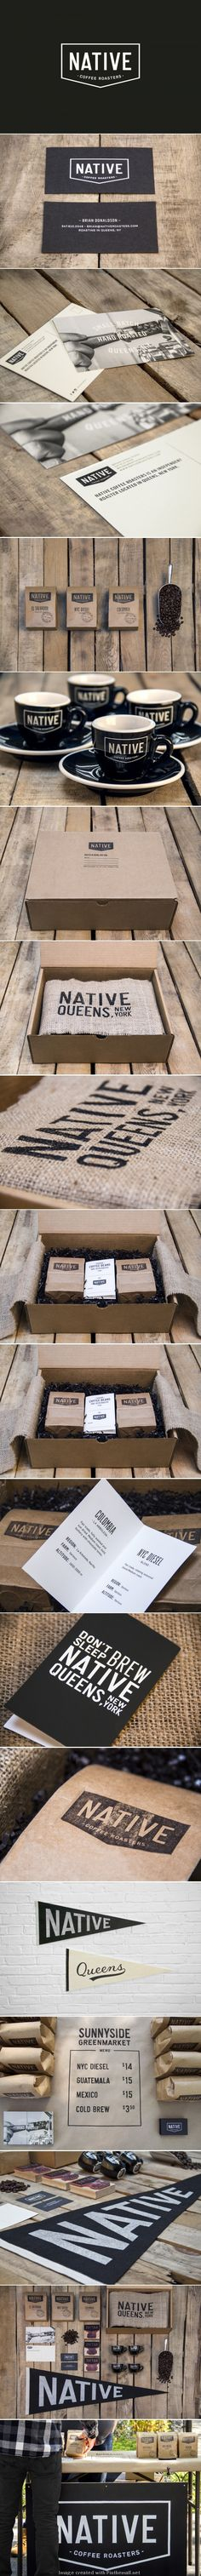 Native Coffee Roasters let's get some coffee #identity #packaging #branding PD